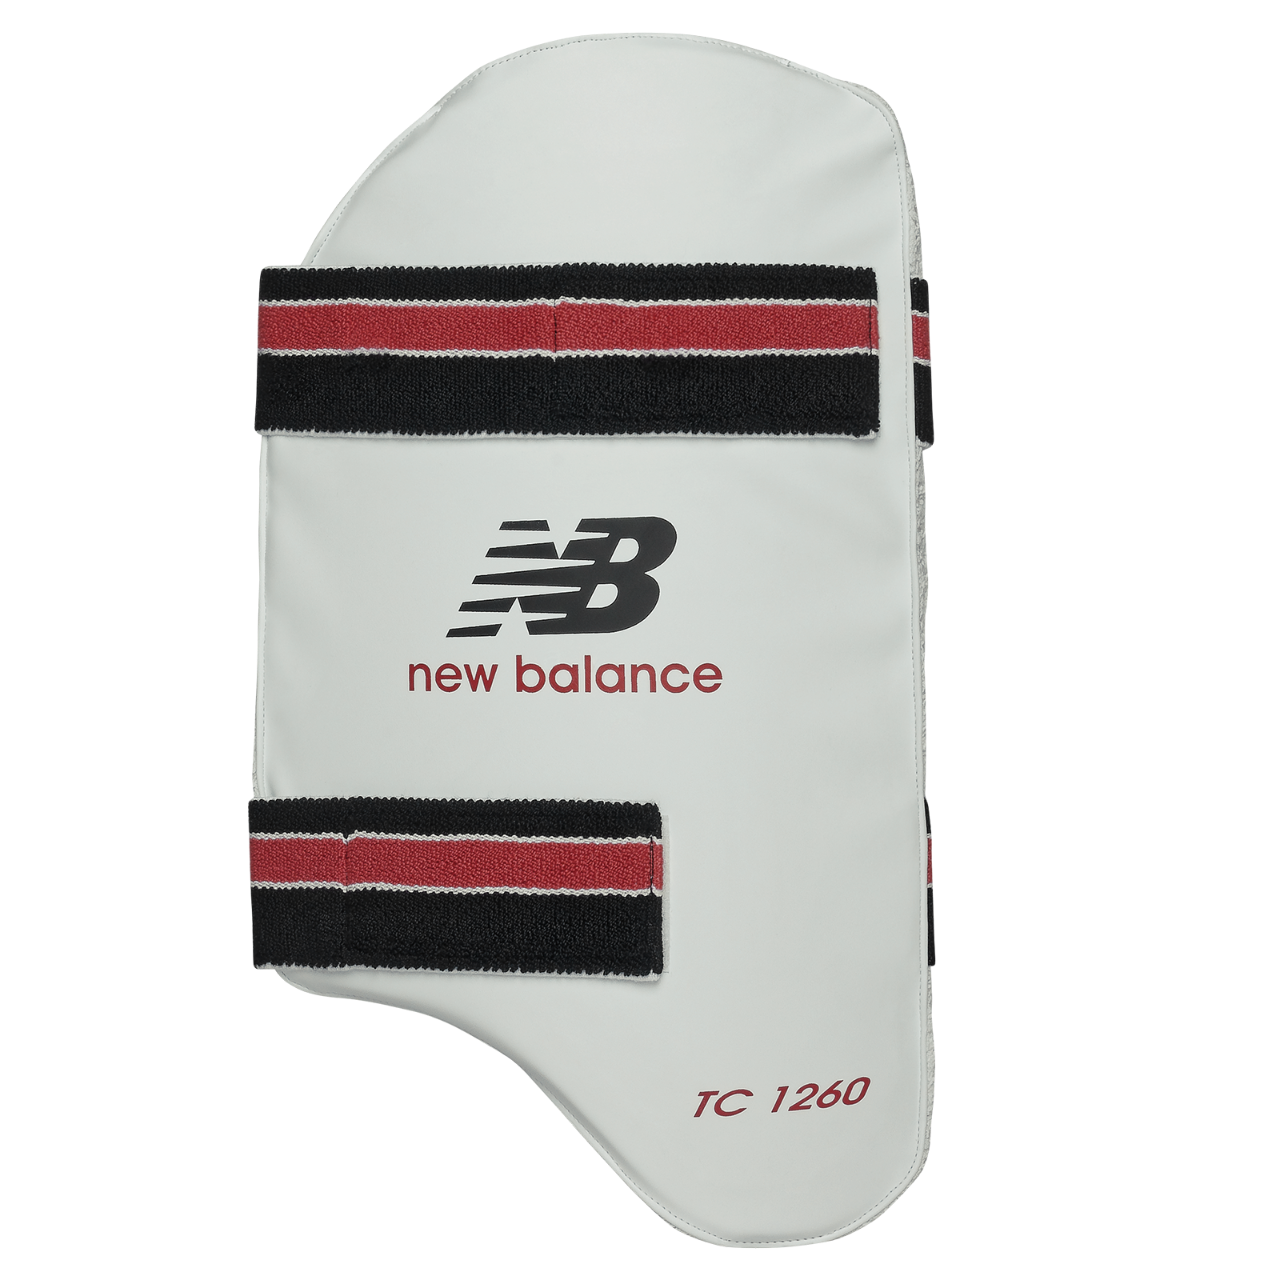 2020 New Balance TC 1260 Thigh Guard